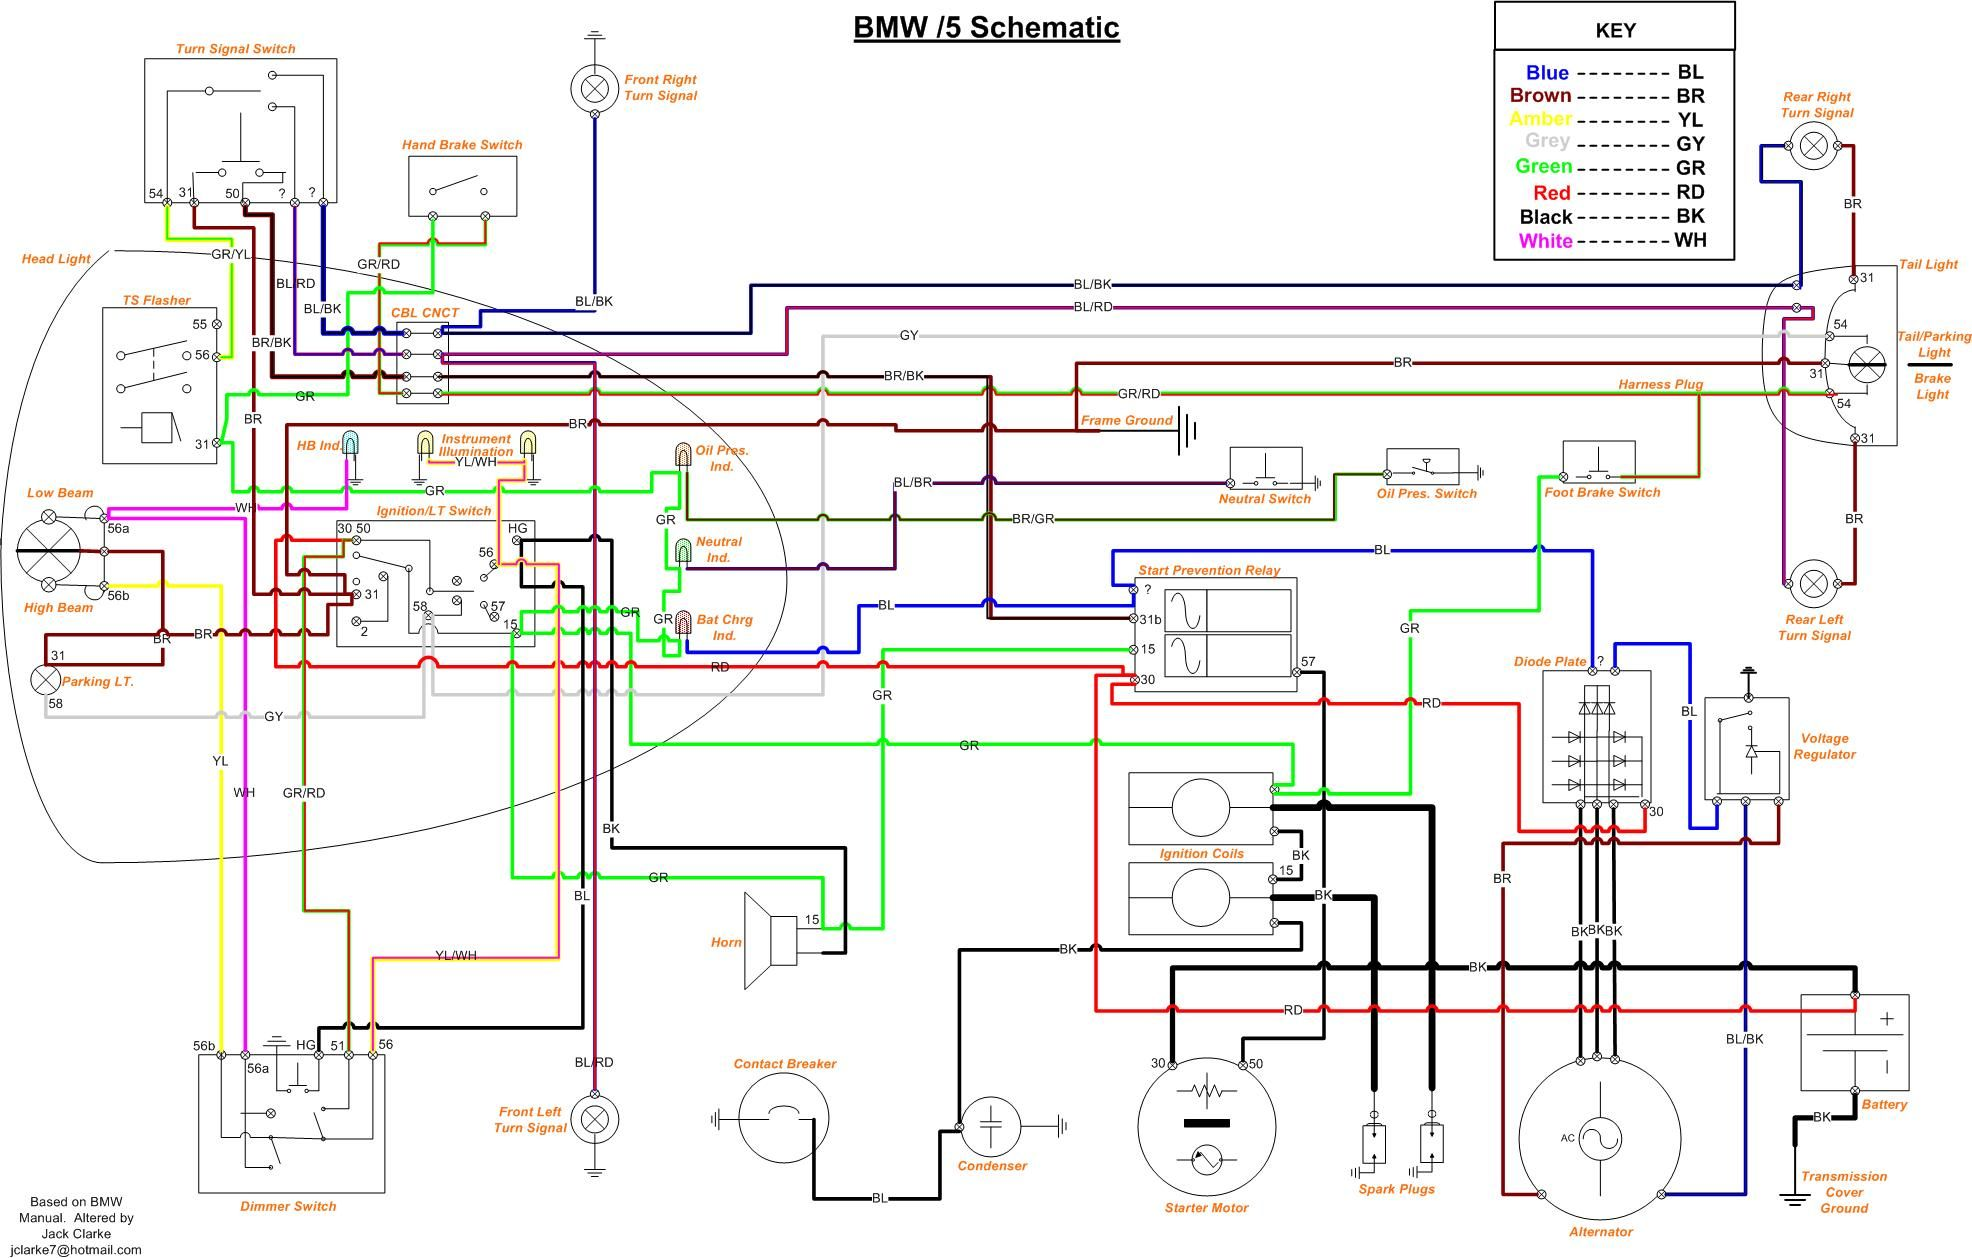 Bmw Hp40 Wiring Diagram   Fusebox and Wiring Diagram layout allow ...